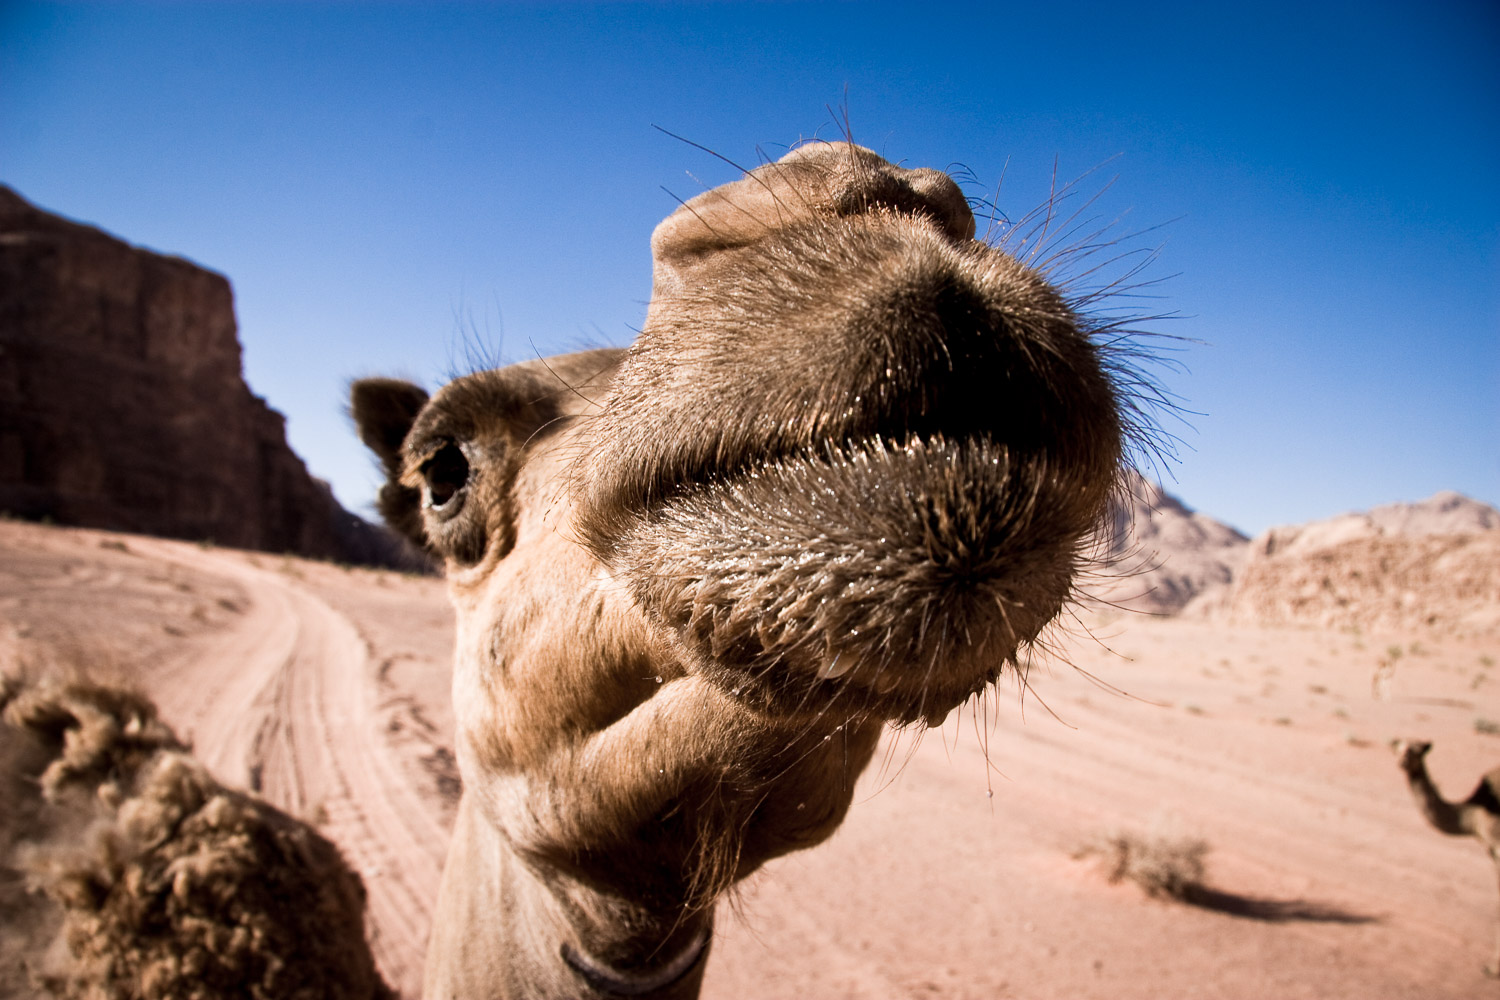 Sharing water with a camel in Wadi Rum, Jordan